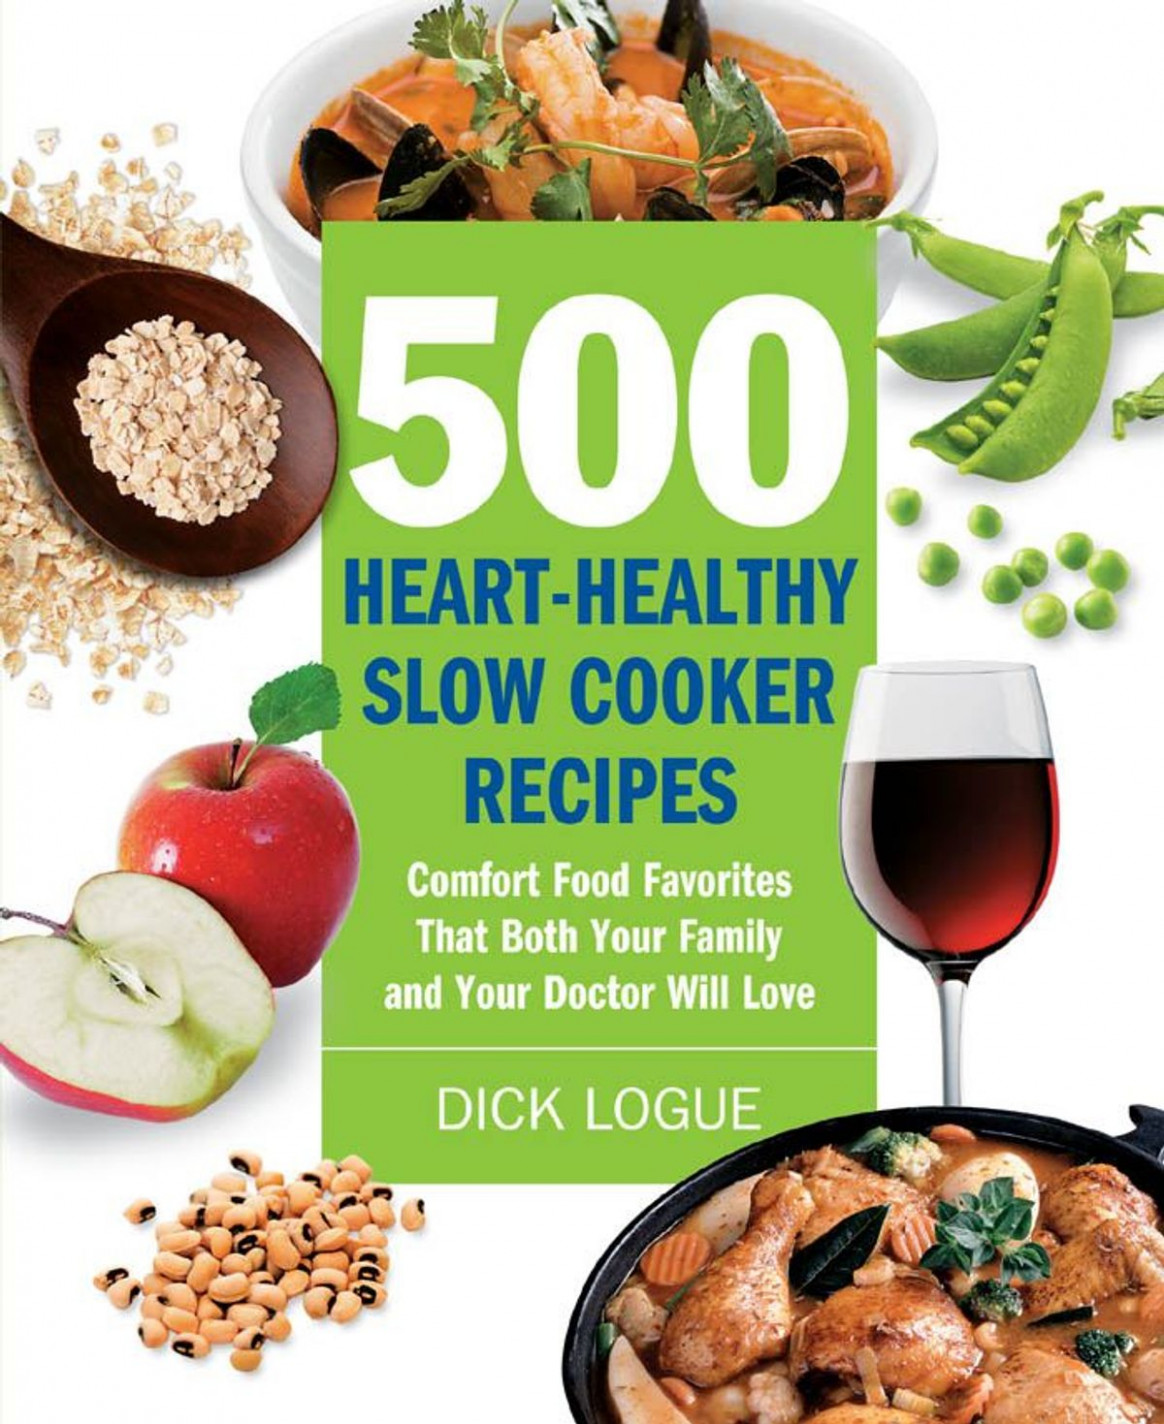 15 Heart-Healthy Slow Cooker Recipes: Comfort Food Favorites That Both  Your Family and Doctor Will Love ebook by Dick Logue - Rakuten Kobo - recipes for a healthy heart